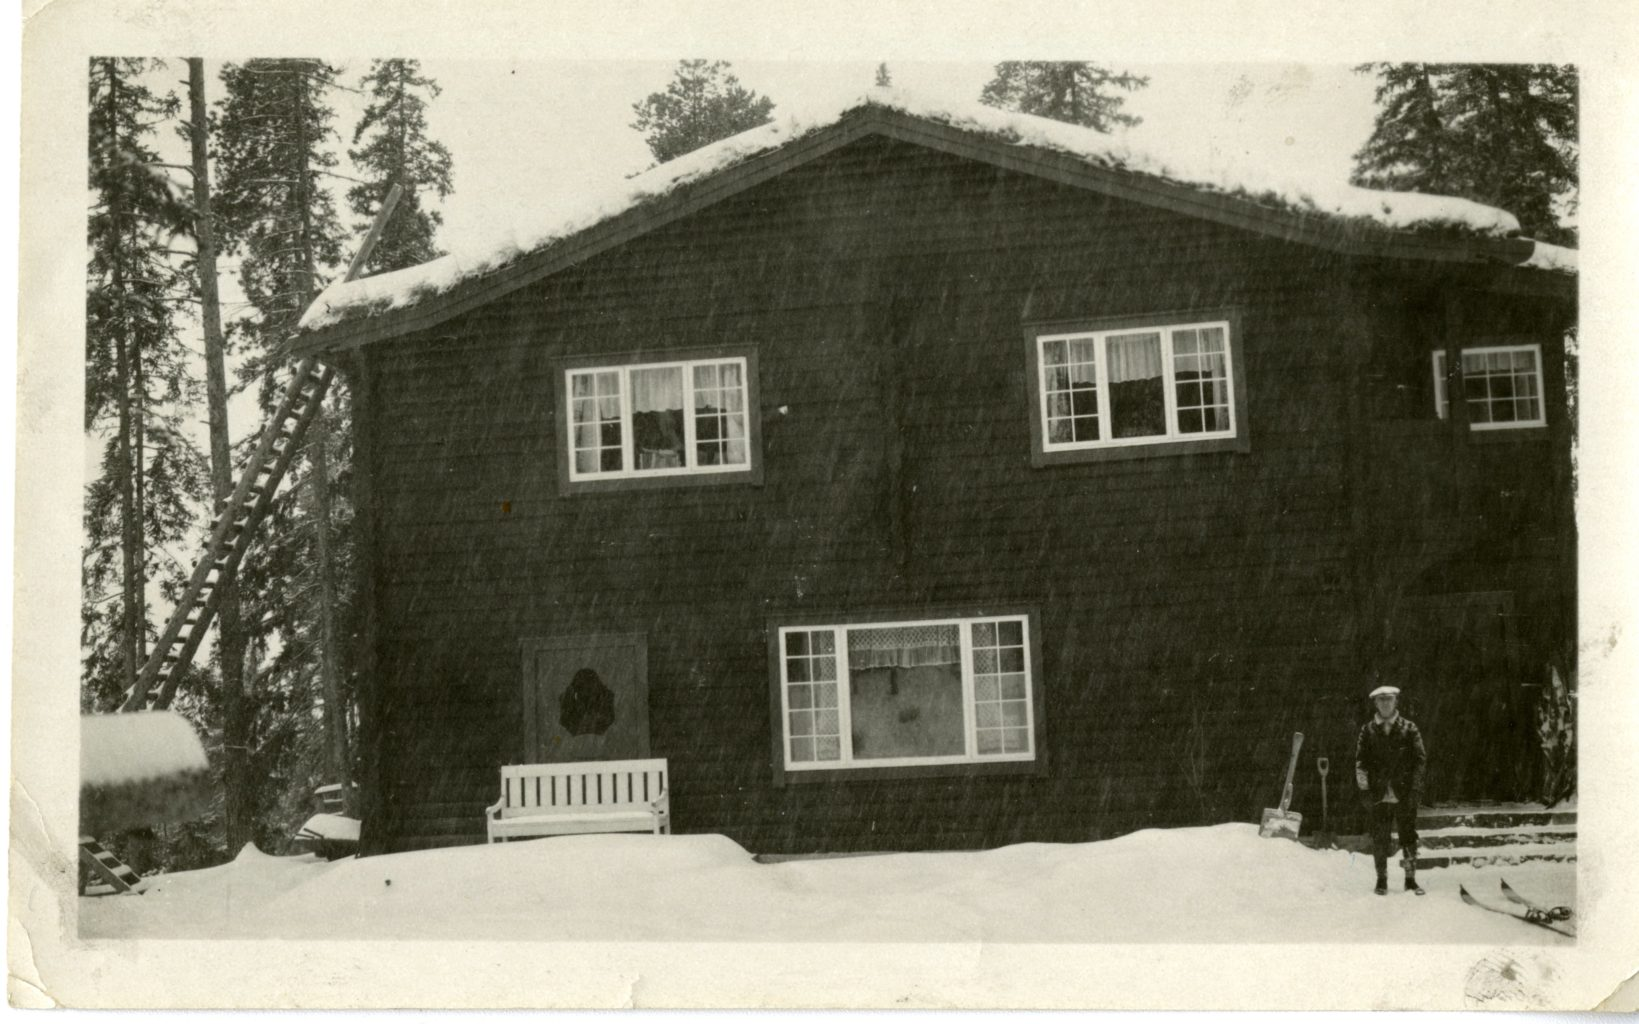 A man stands outside of a large house.